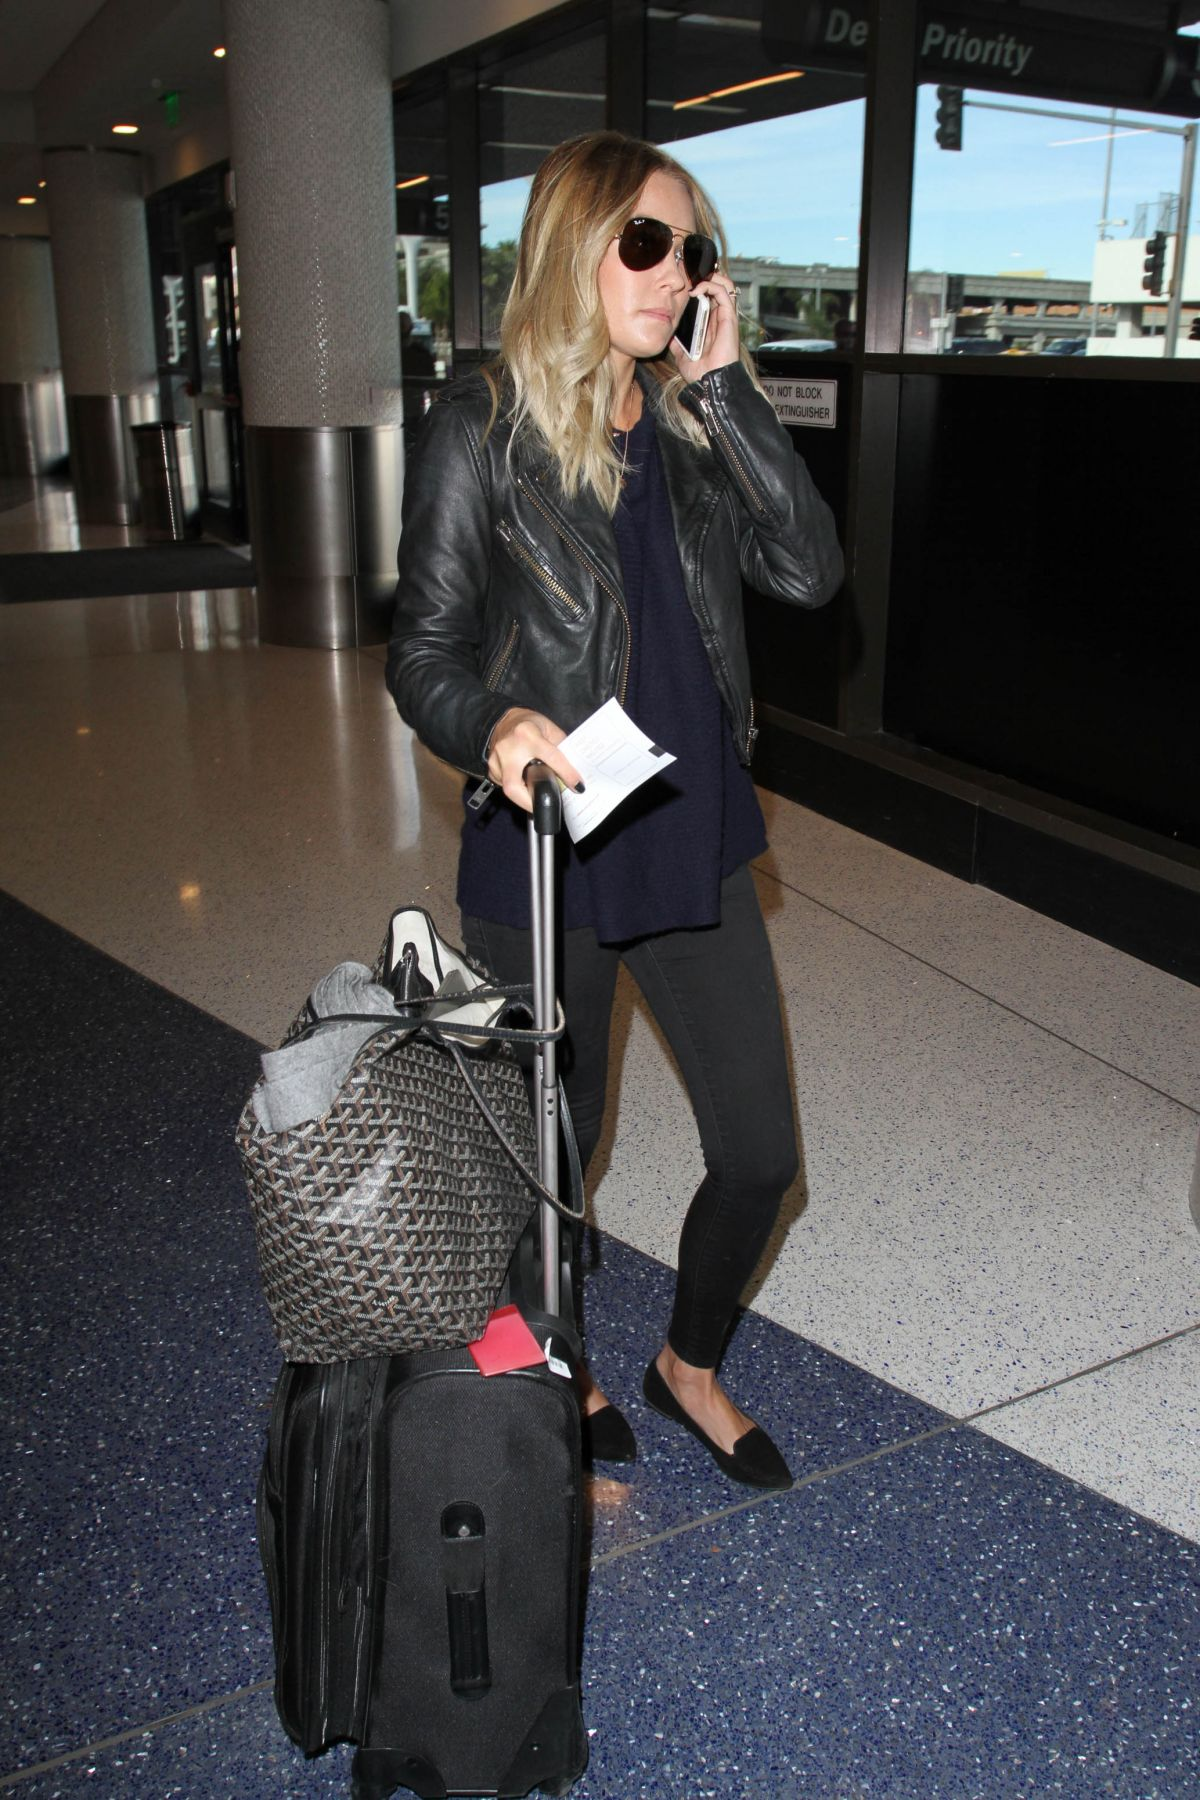 LAUREN CONRAD at Los Angeles International Airport 12/07/2015